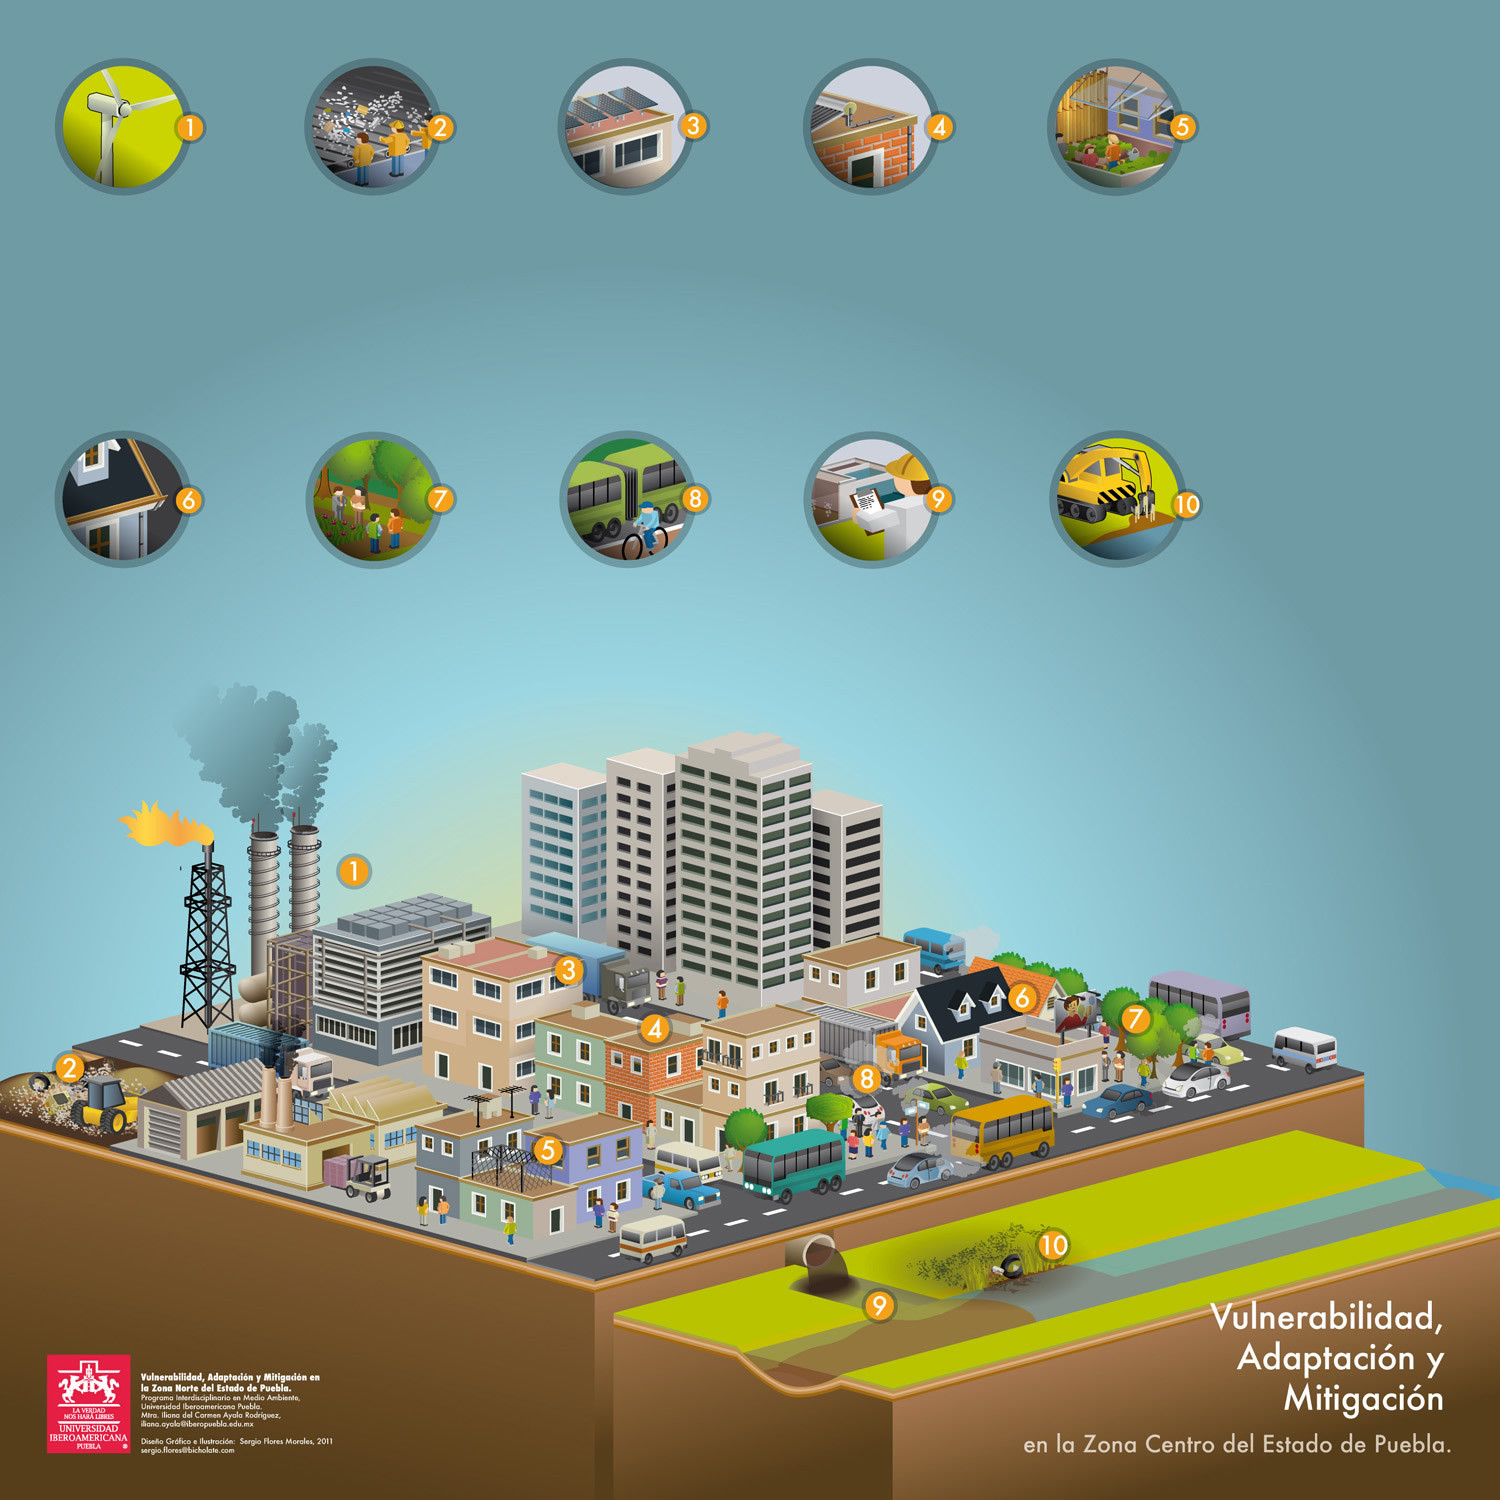 Vulnerability, adaptation, mitigation, urban Infographic